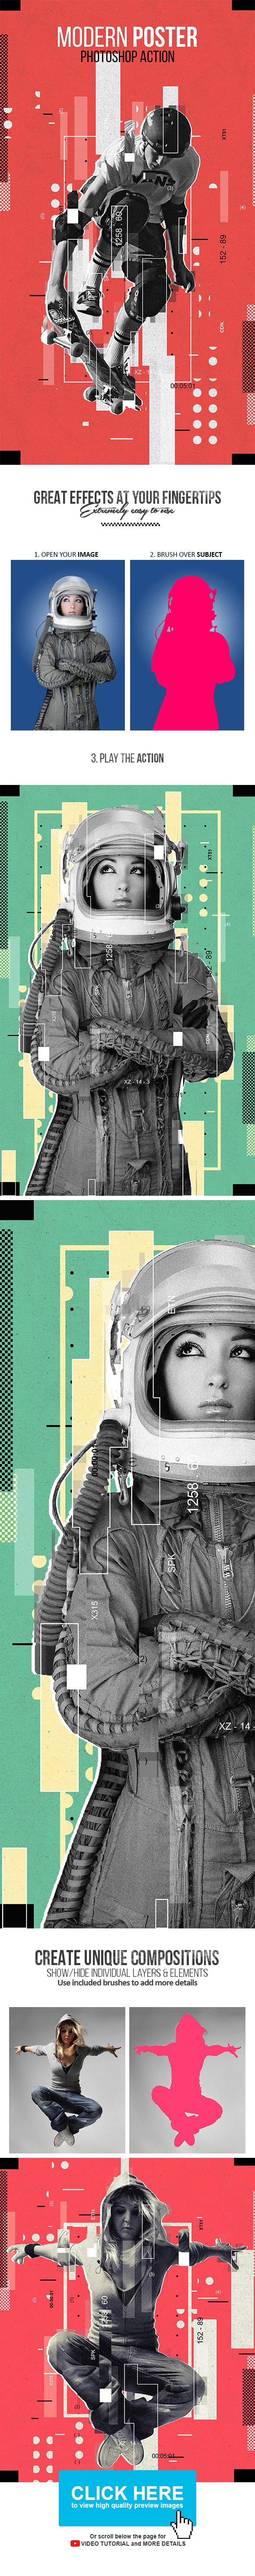 Modern Poster Photoshop Action - Photo Effects Actions